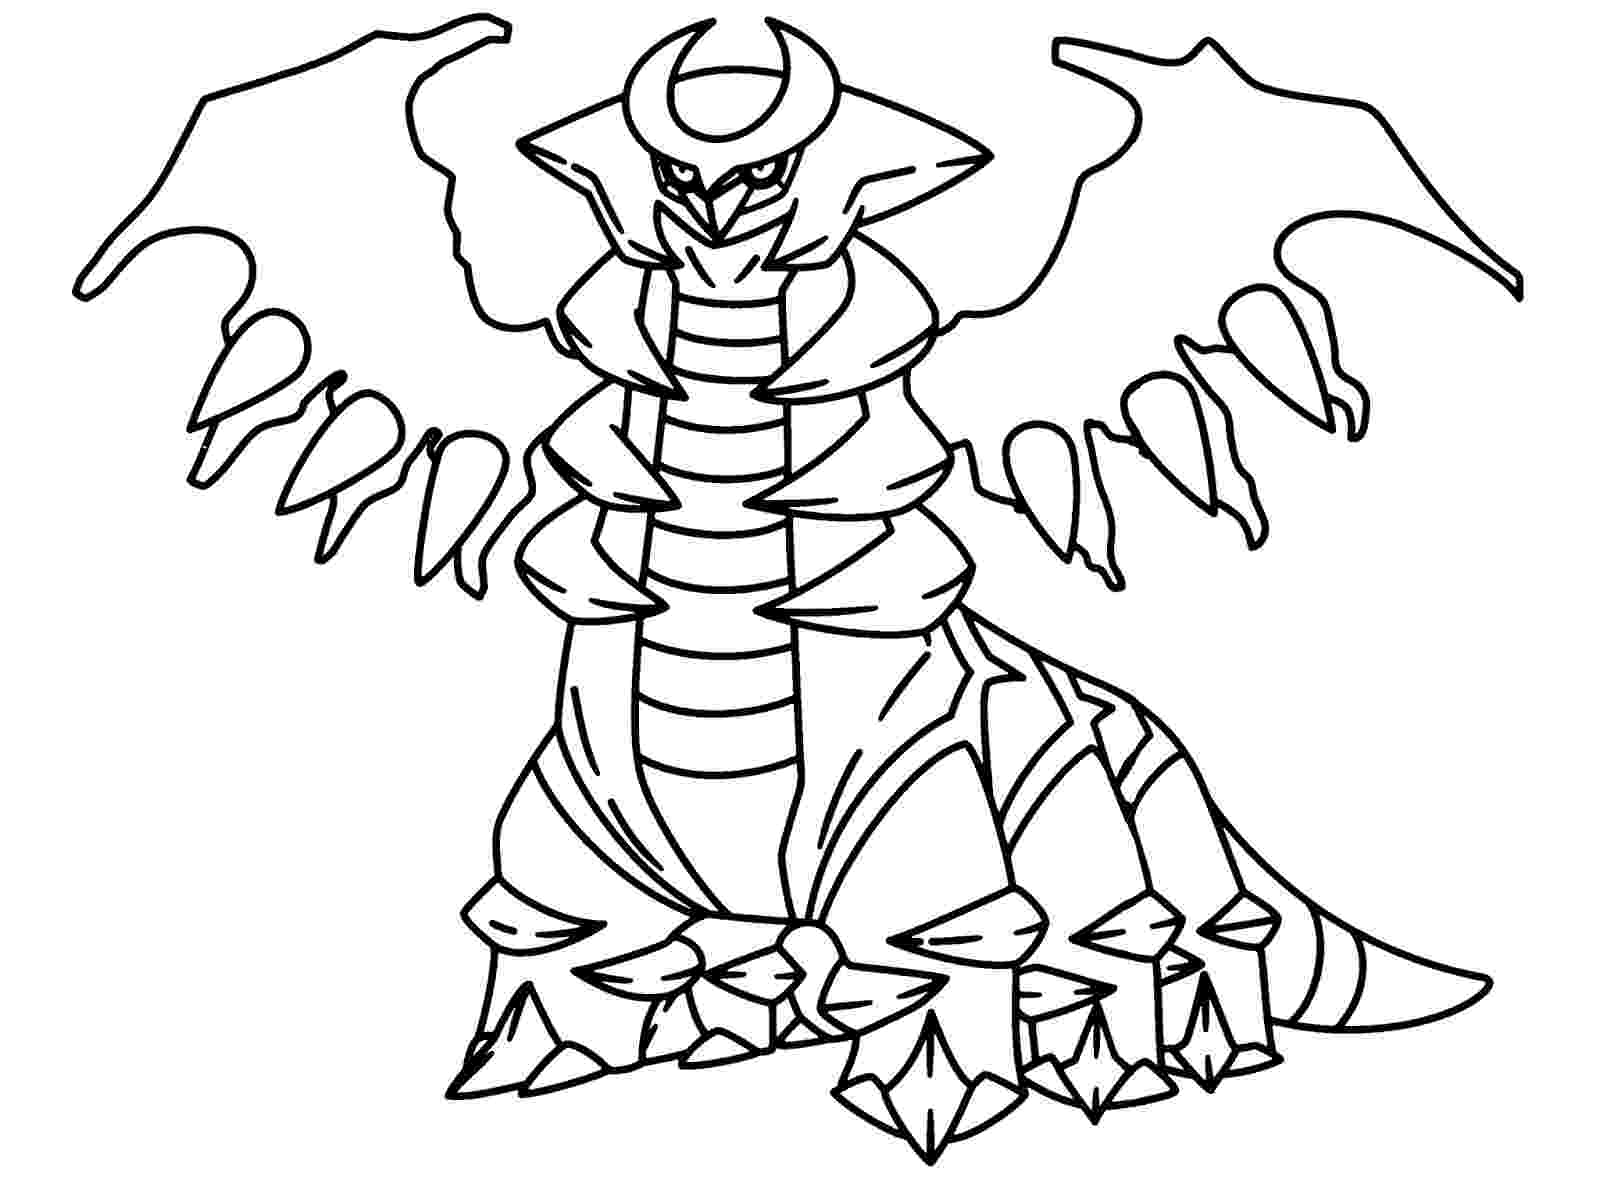 how to color pokemon pokemon dialga coloring pages ideas pokemon to color how